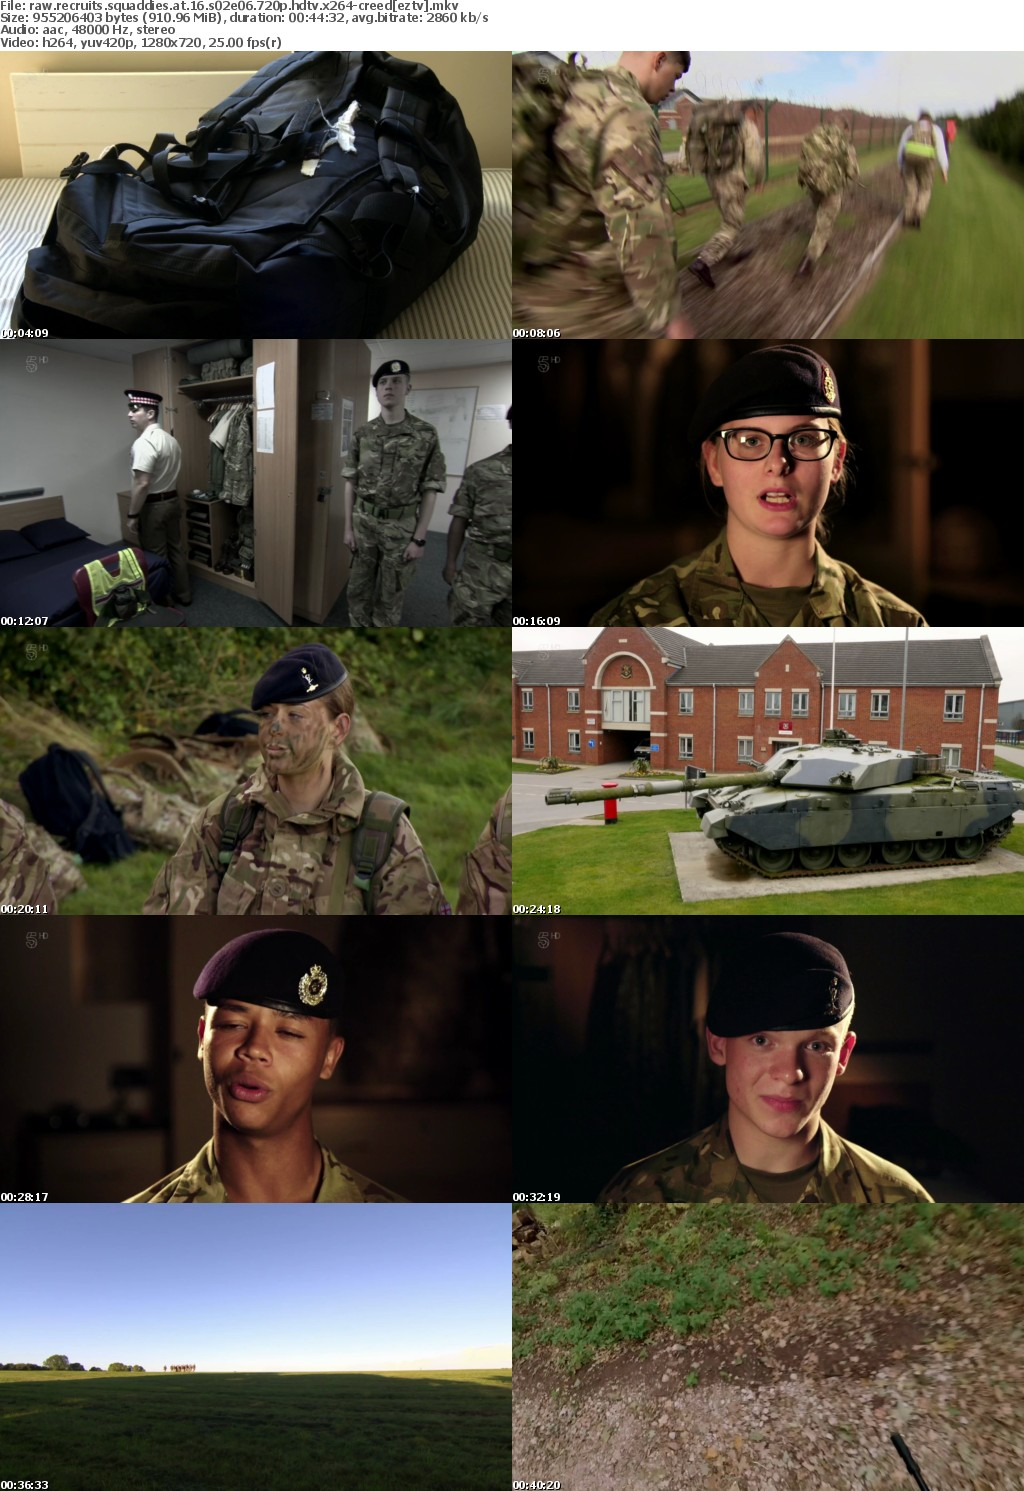 Raw Recruits Squaddies At 16 S02E06 720p HDTV x264-CREED